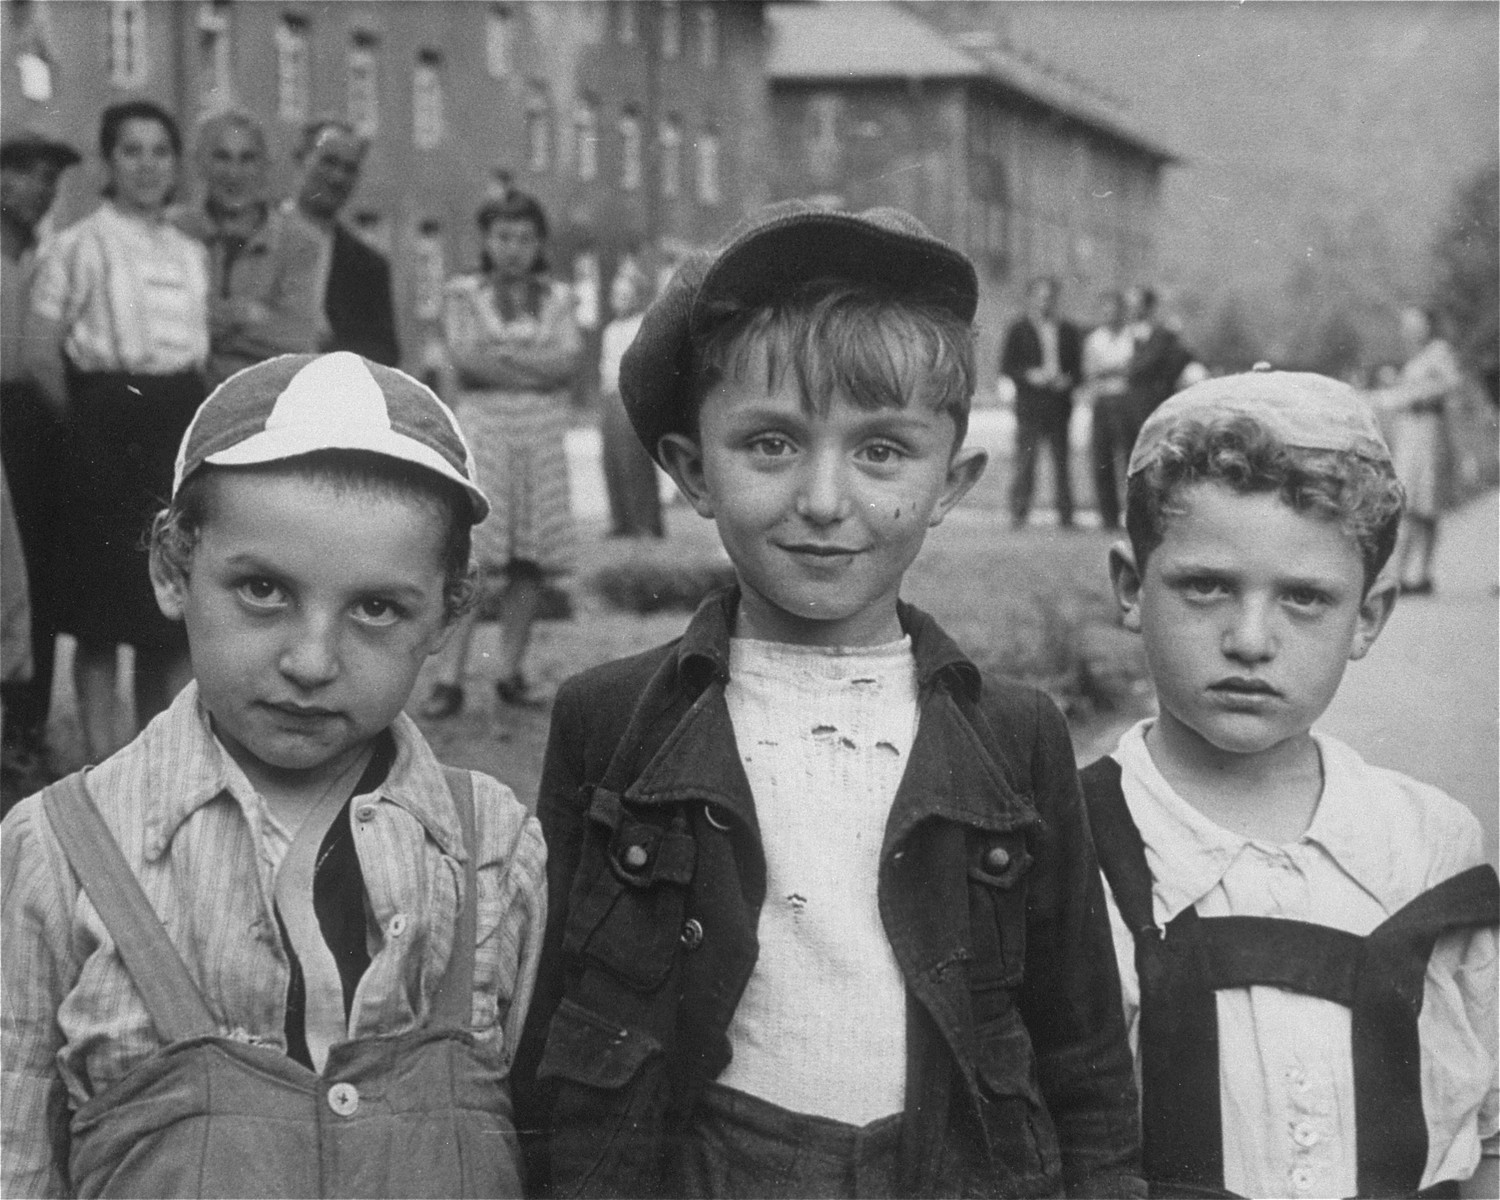 Portrait of three young Jewish boys wearing camps standing outside in the Bad Reichenhall displaced persons camp.